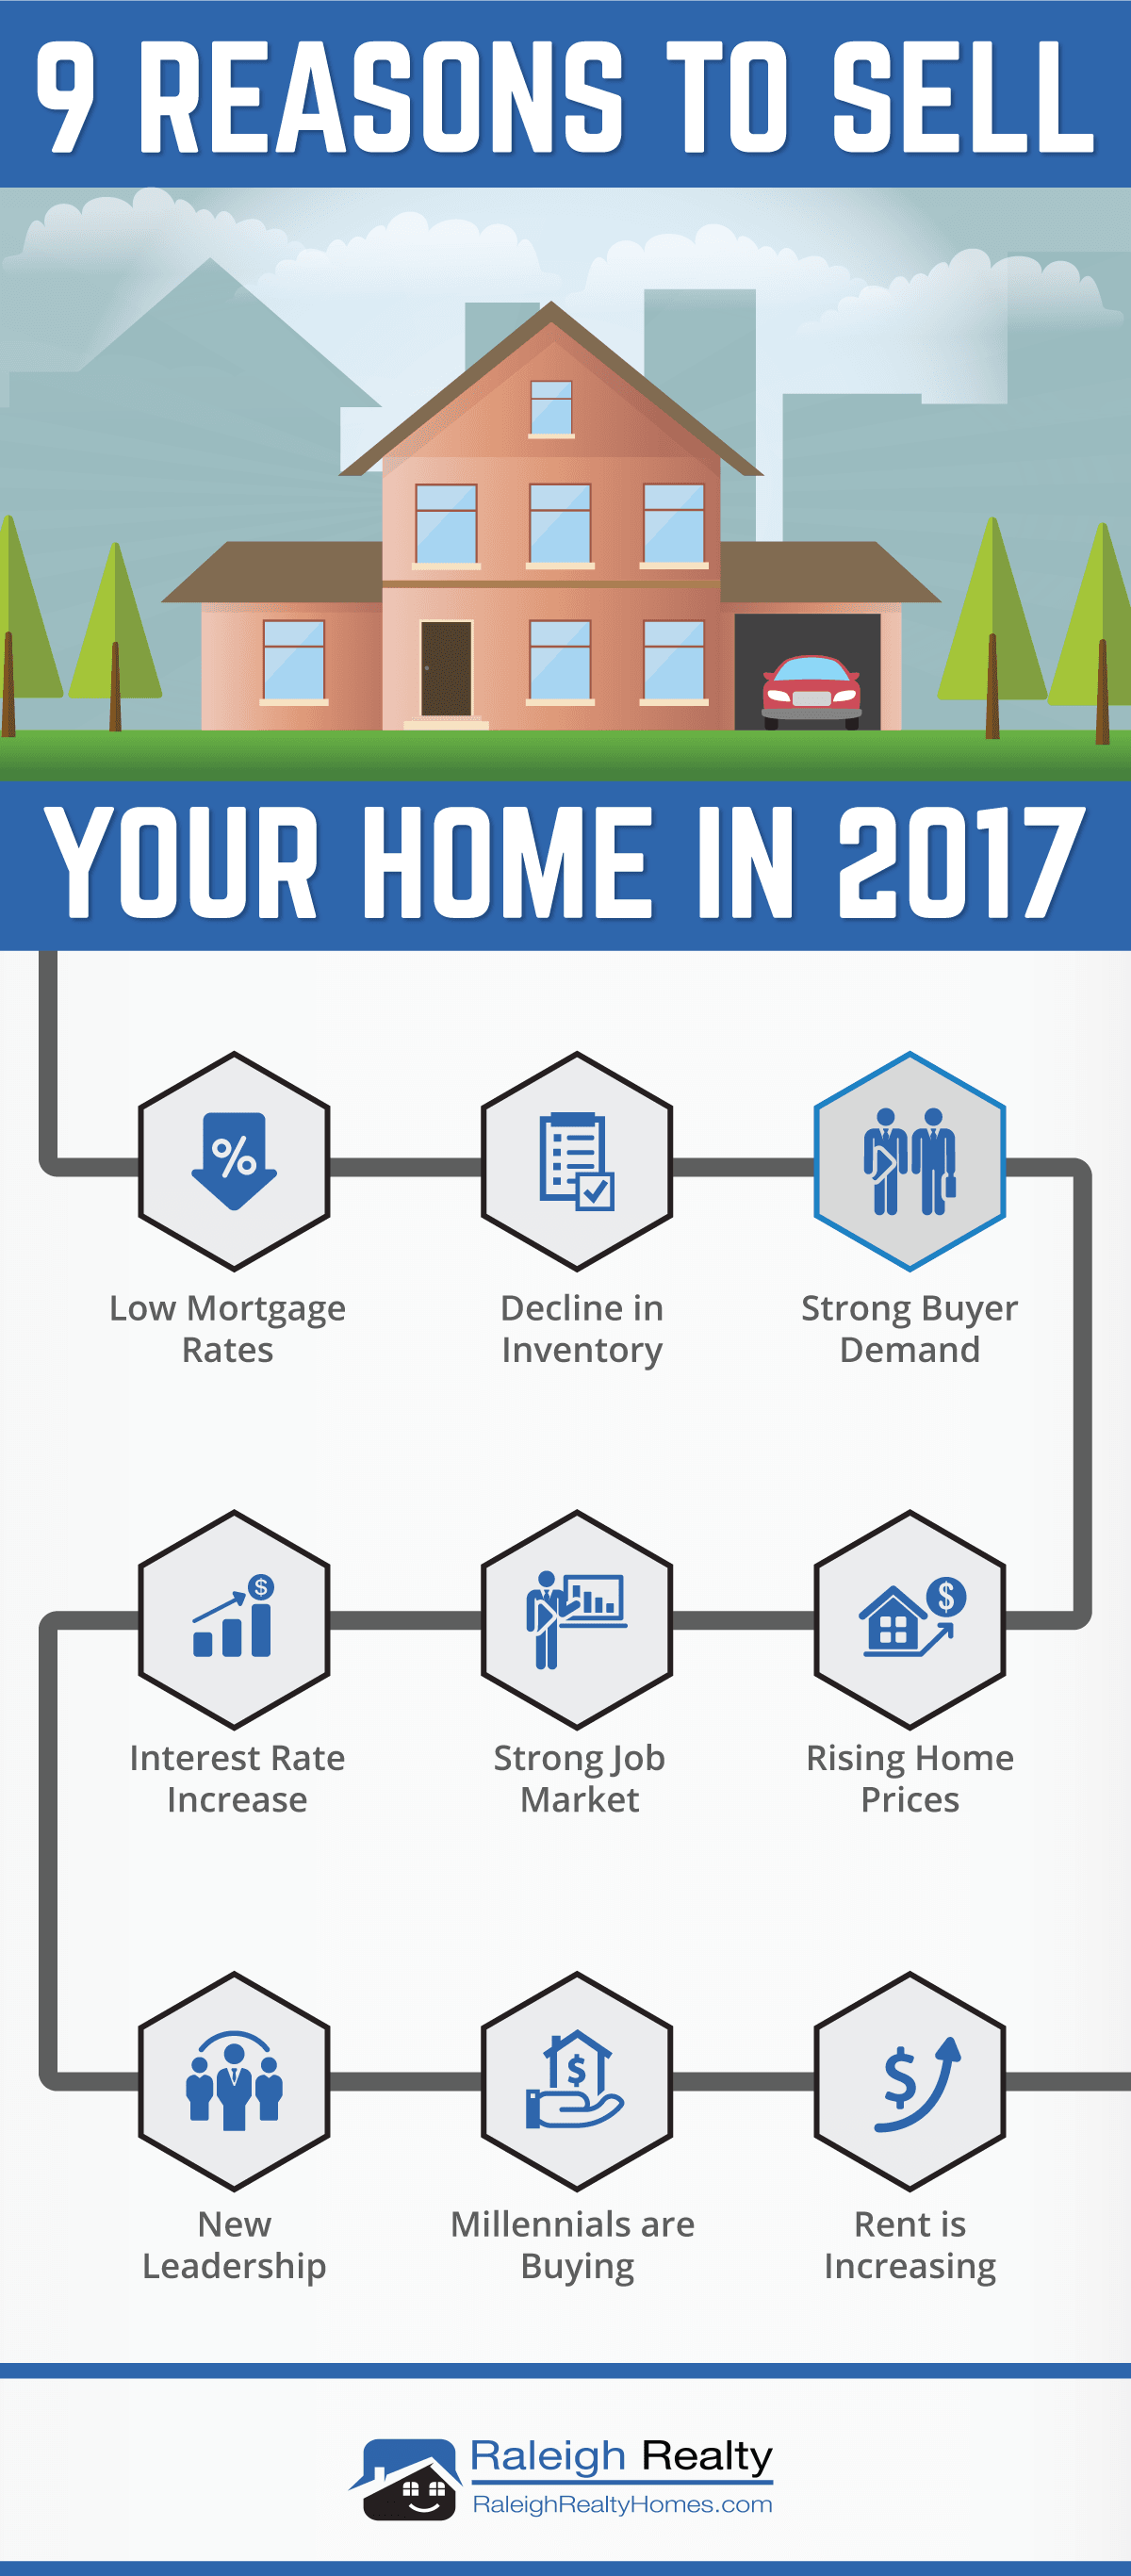 9 Reasons to Sell Your Home in 2017